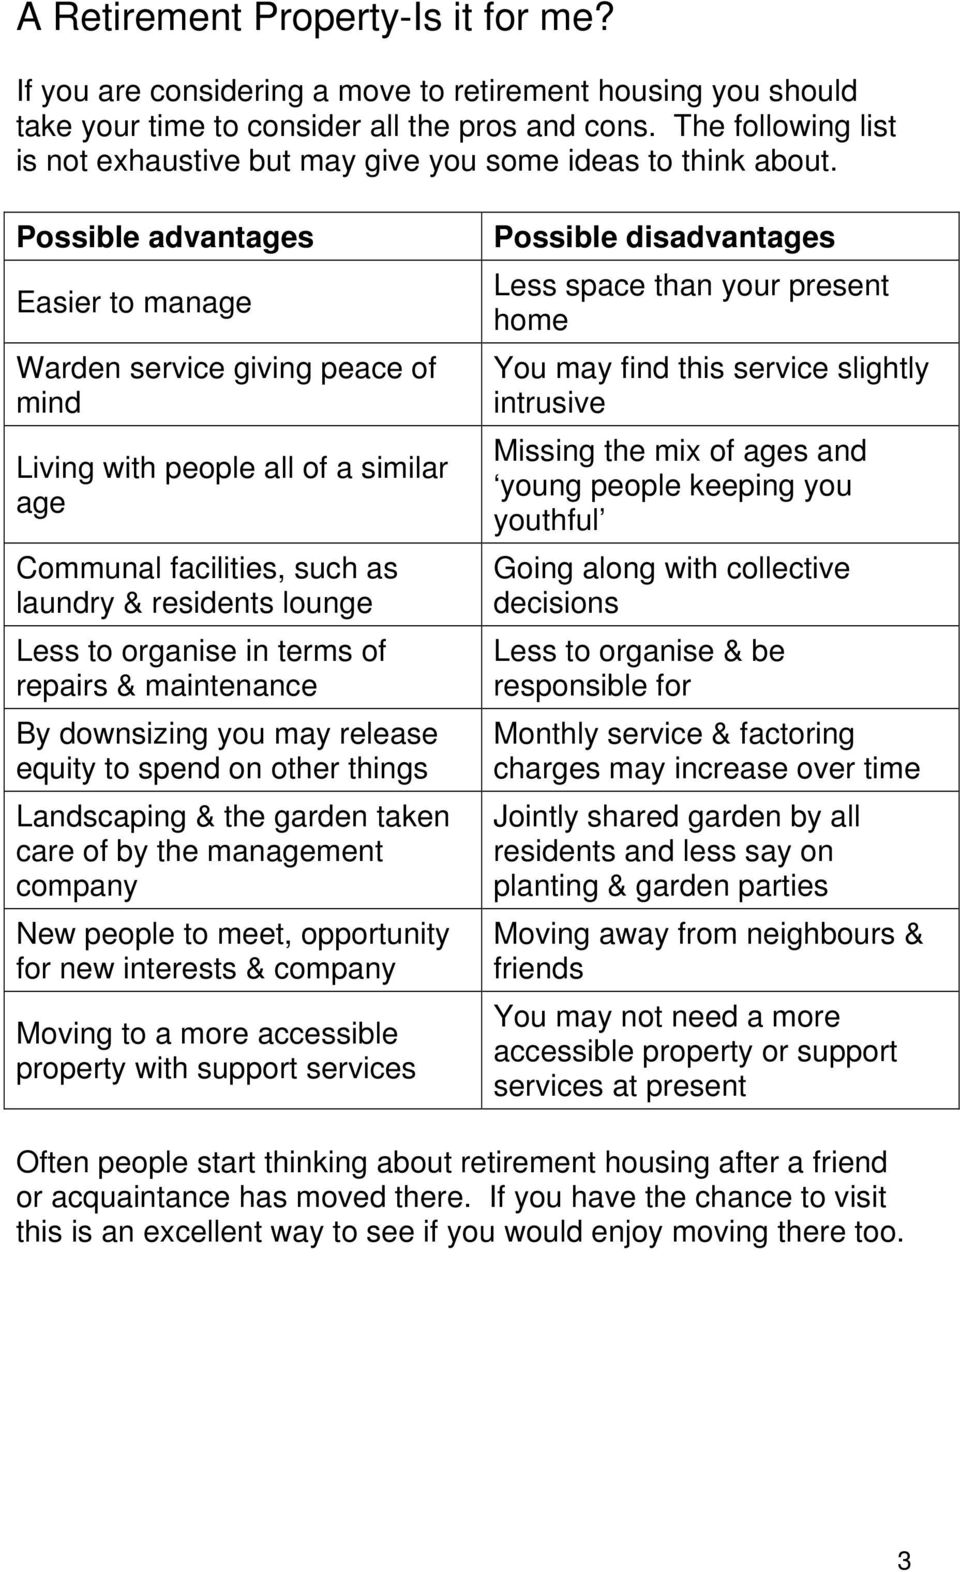 Possible advantages Easier to manage Warden service giving peace of mind Living with people all of a similar age Communal facilities, such as laundry & residents lounge Less to organise in terms of